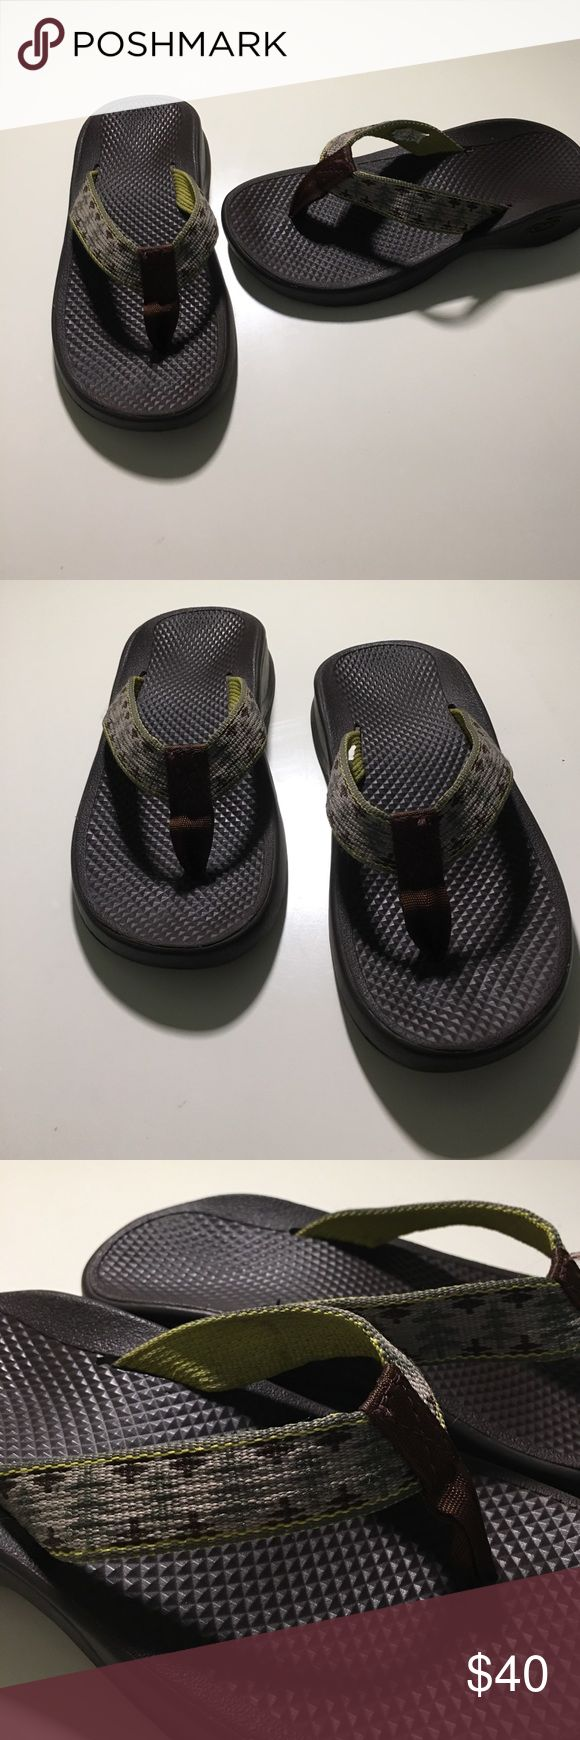 Childrens Chaco flip flops Childrens Chaco flip flops in Excellent used condition. Brown flip flop w/ hints of dark green and brown on strap. Chaco Shoes Sandals & Flip Flops